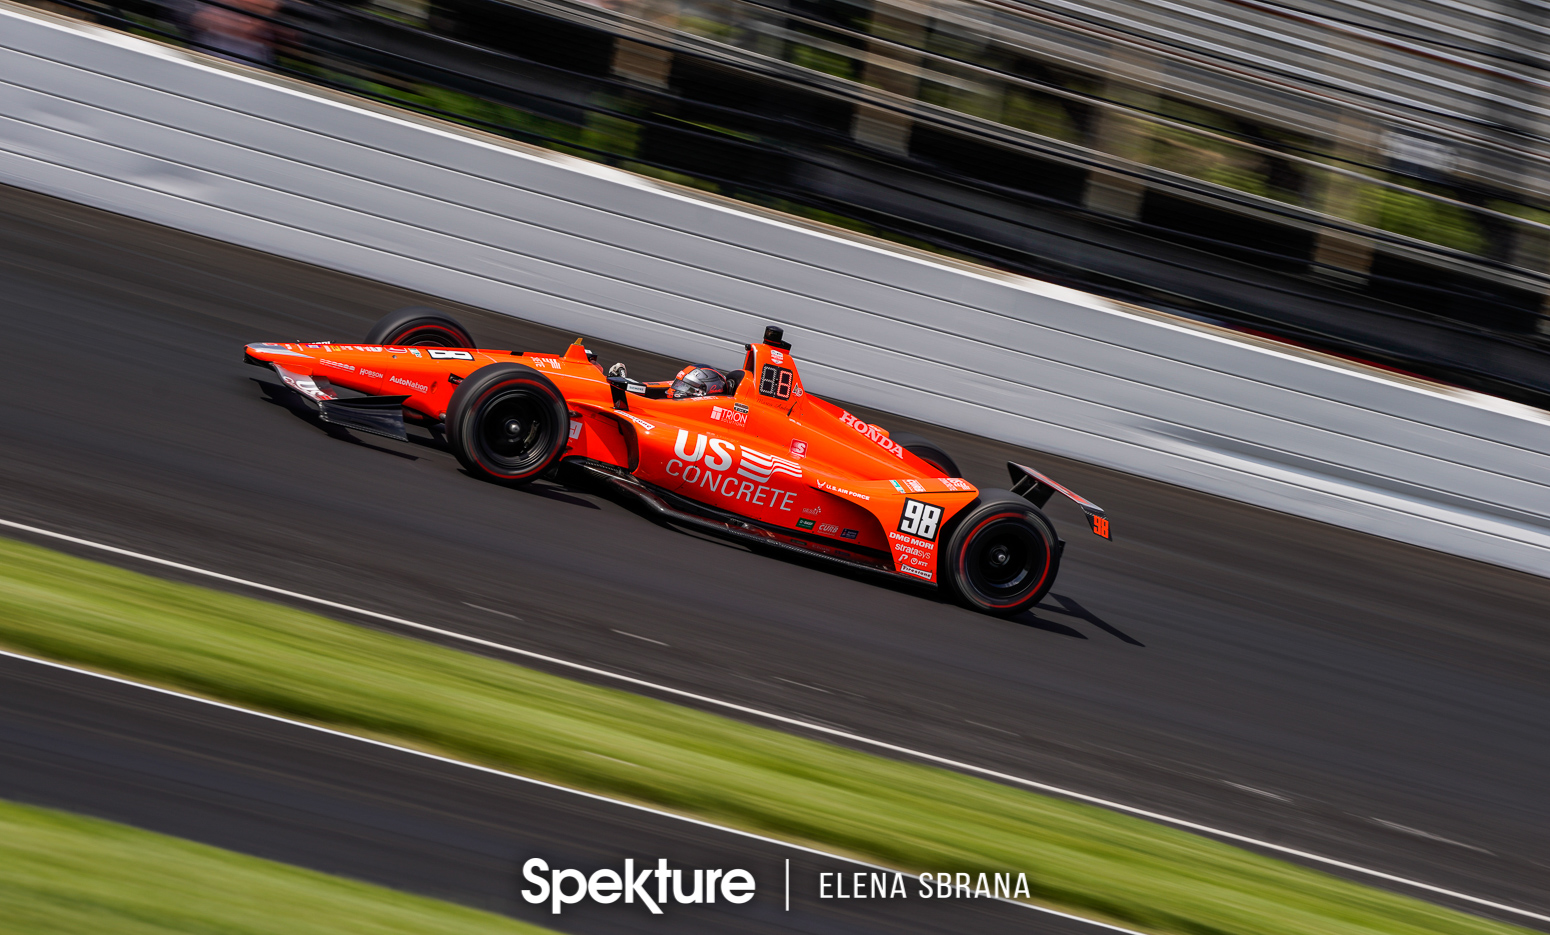 Earchphoto Sports - Marco Andretti on track at IMS